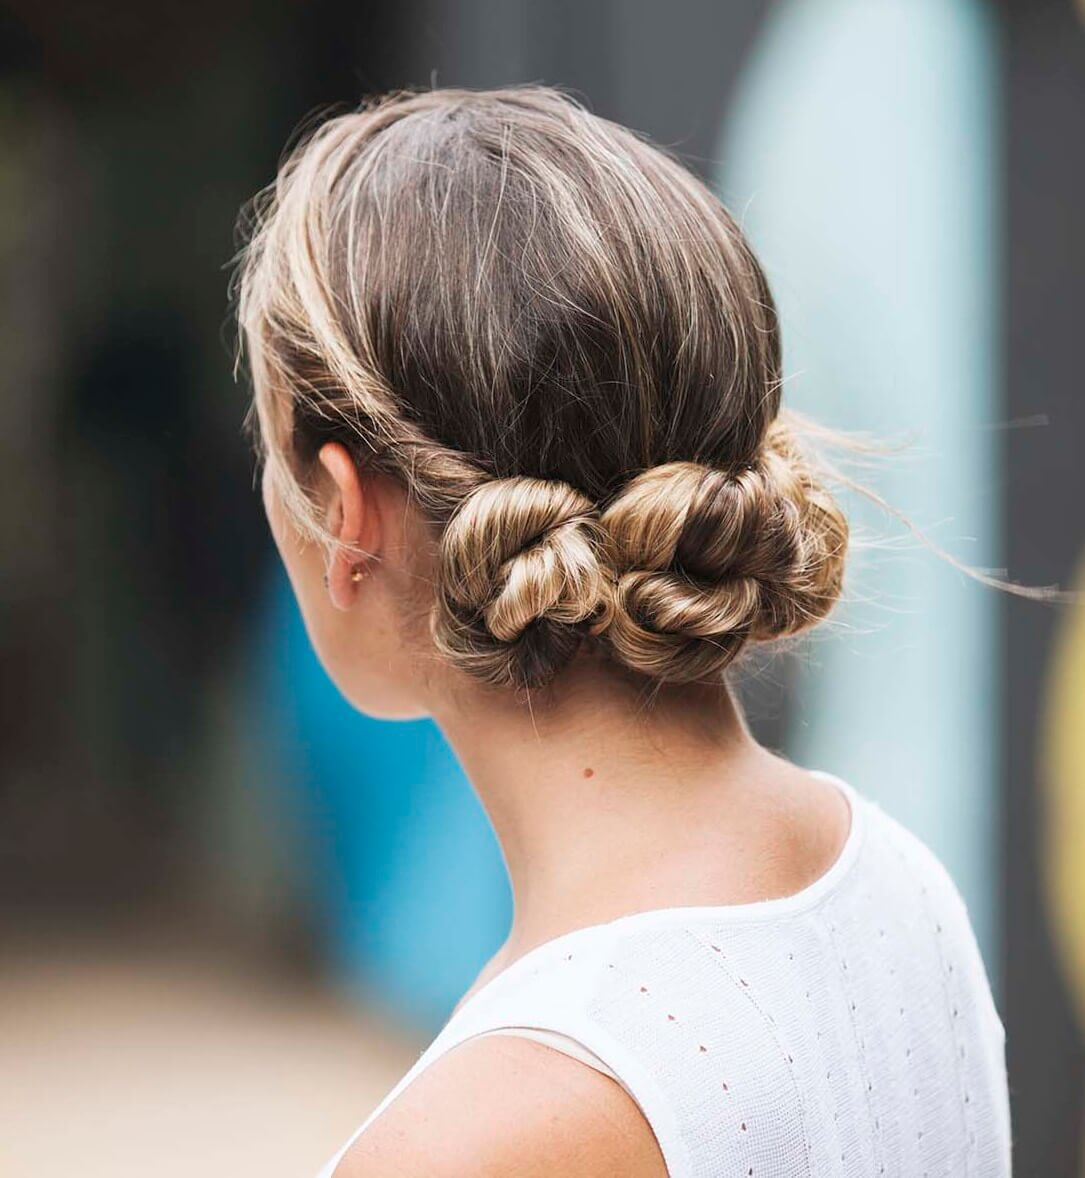 Hair How to Create a Chic Chignon Hairstyle For Fall